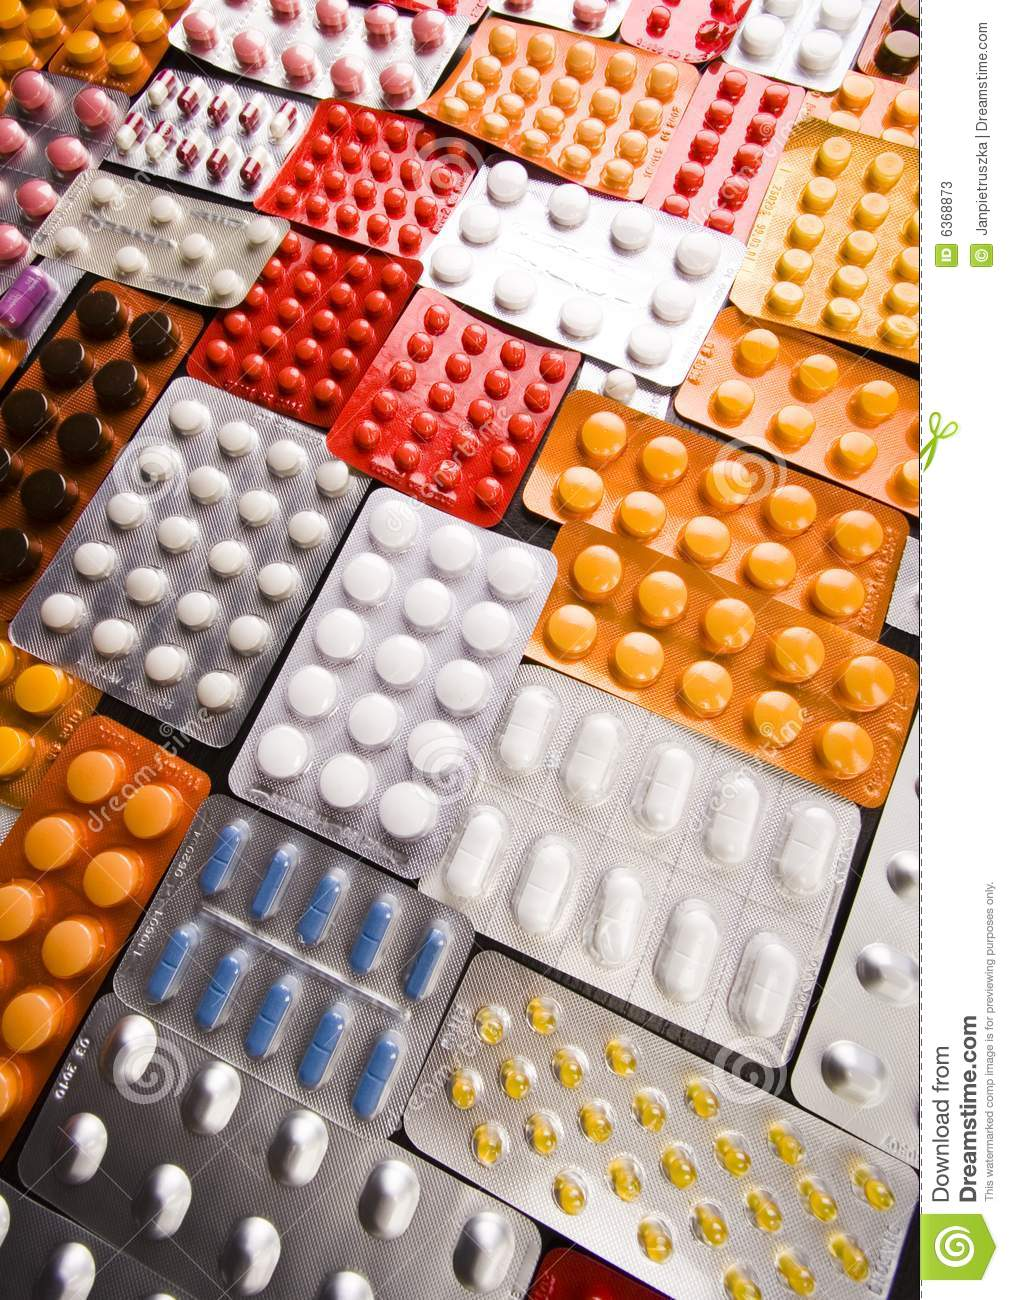 Drugs, Medicines, Tablets, Pills Stock Image - Image of colourful